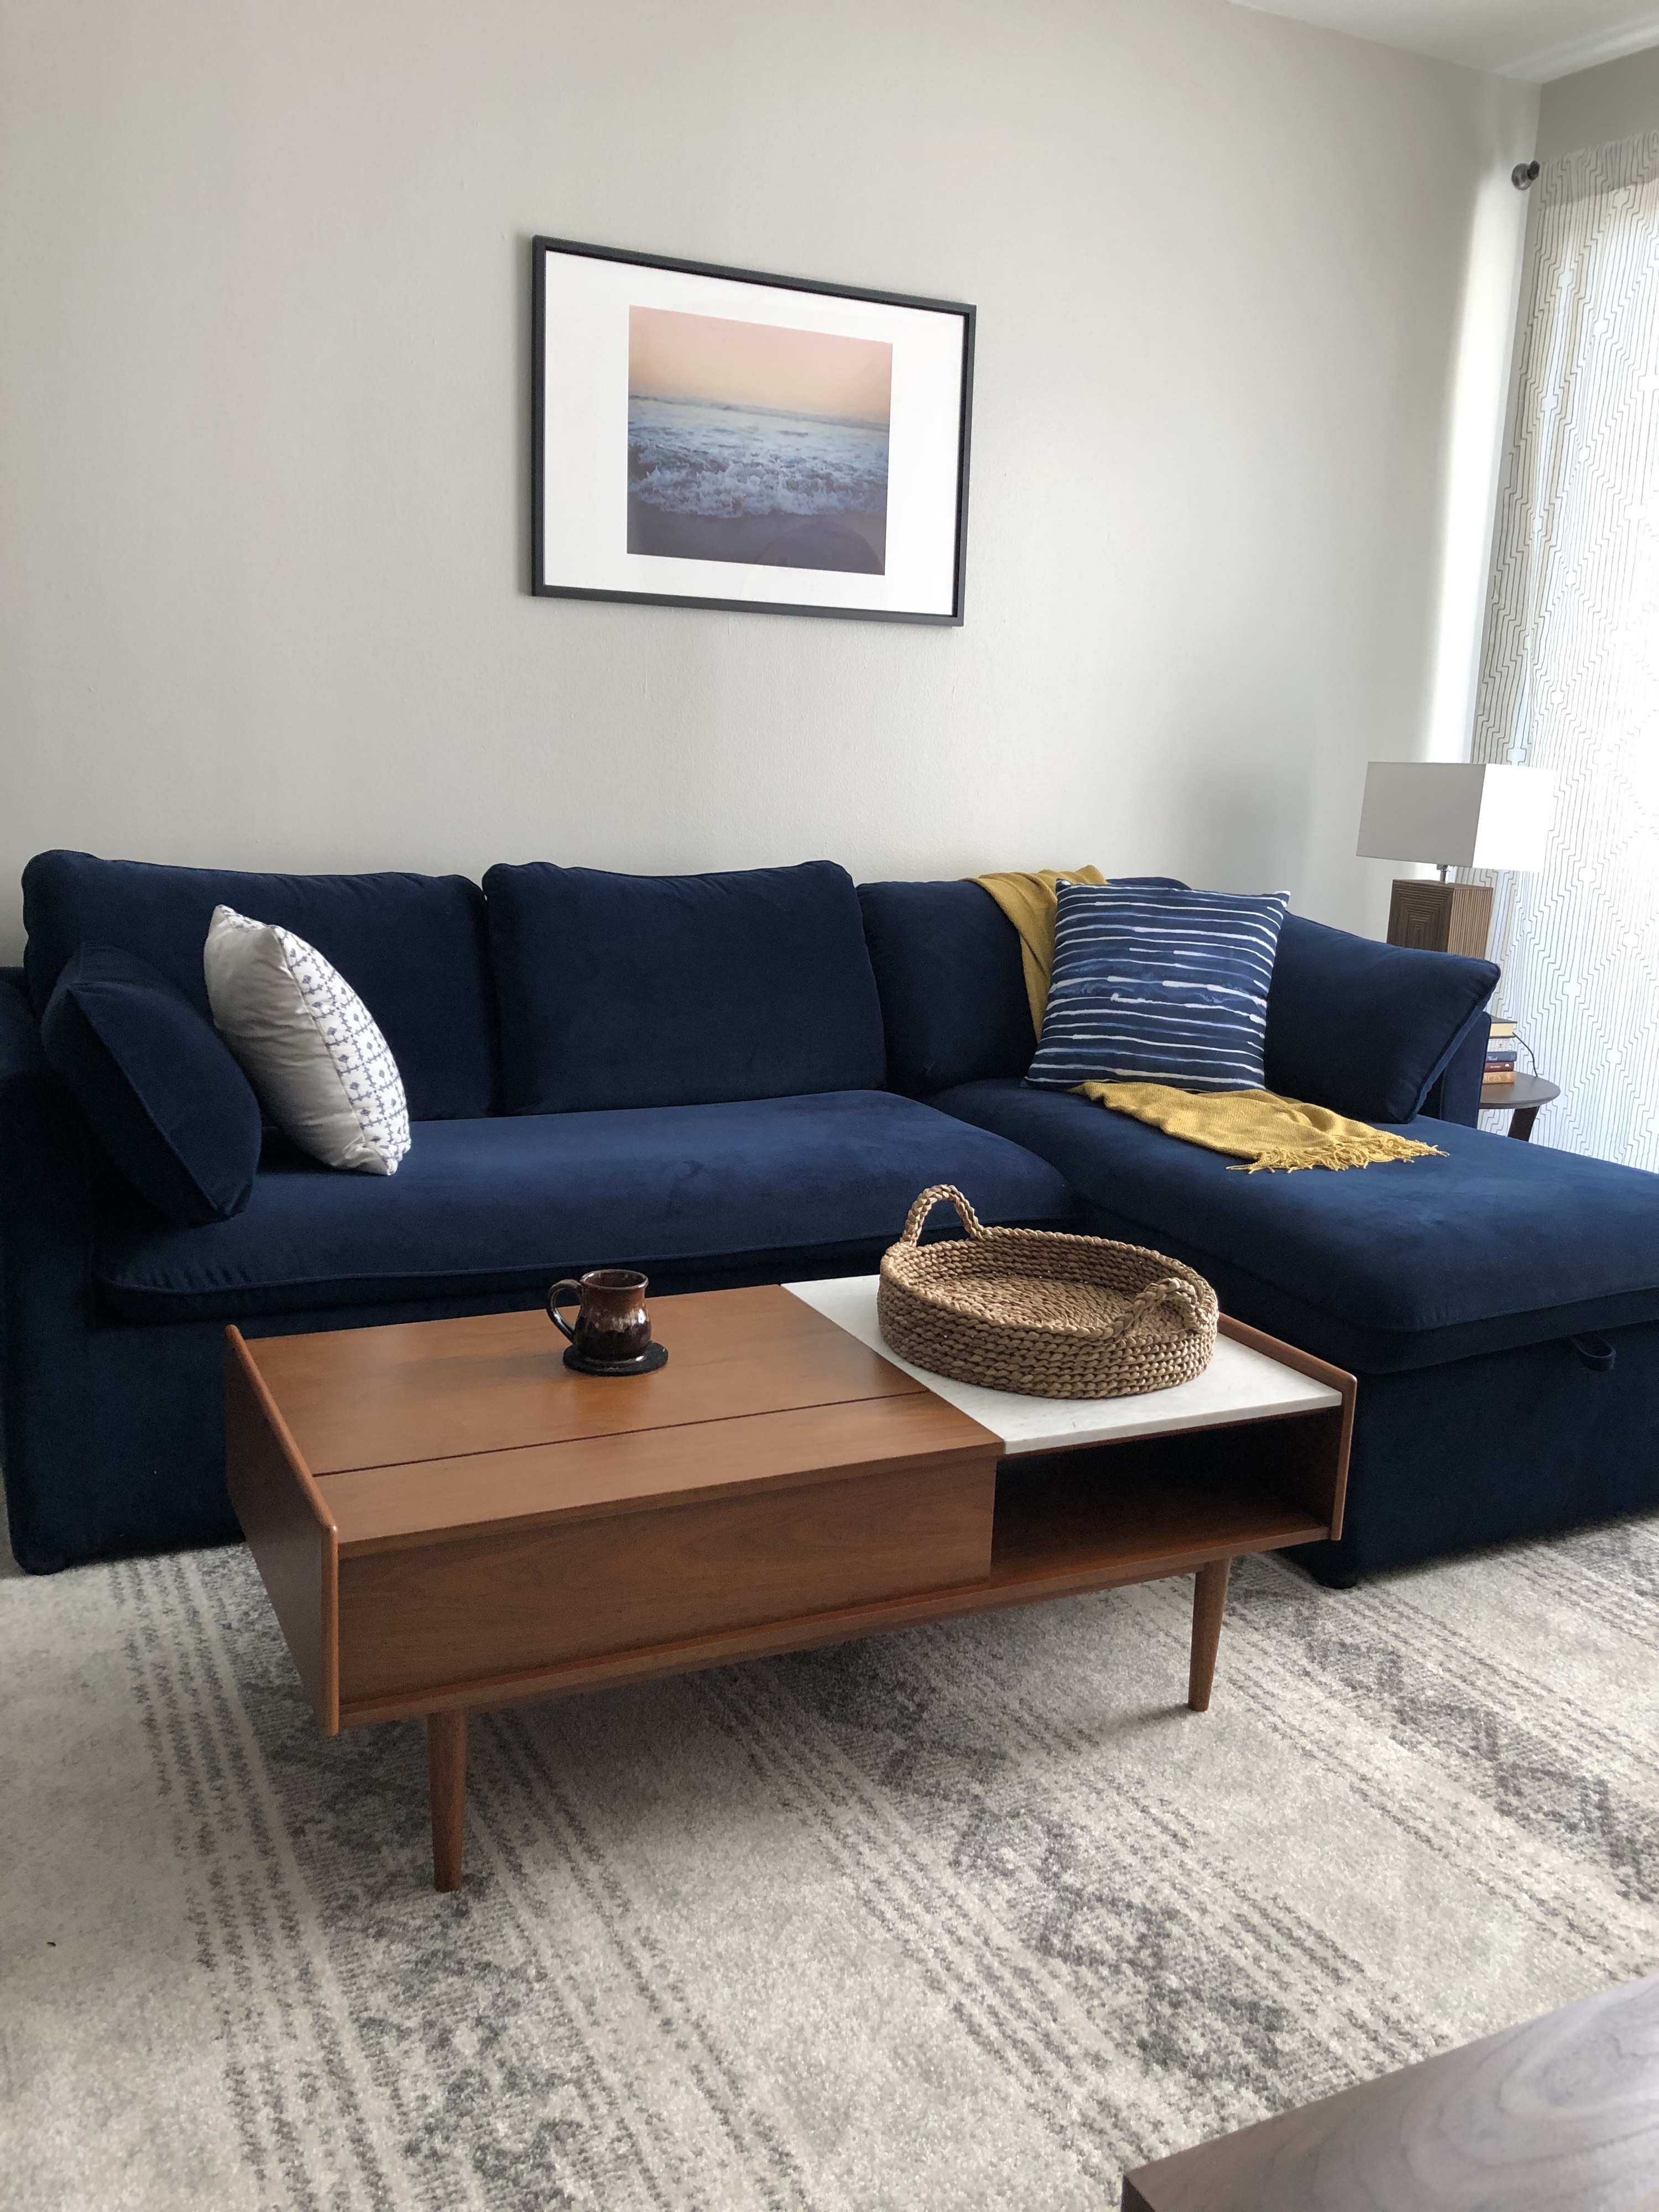 Photo of completed navy blue couch, with artwork up, rug in place, and coffee table.